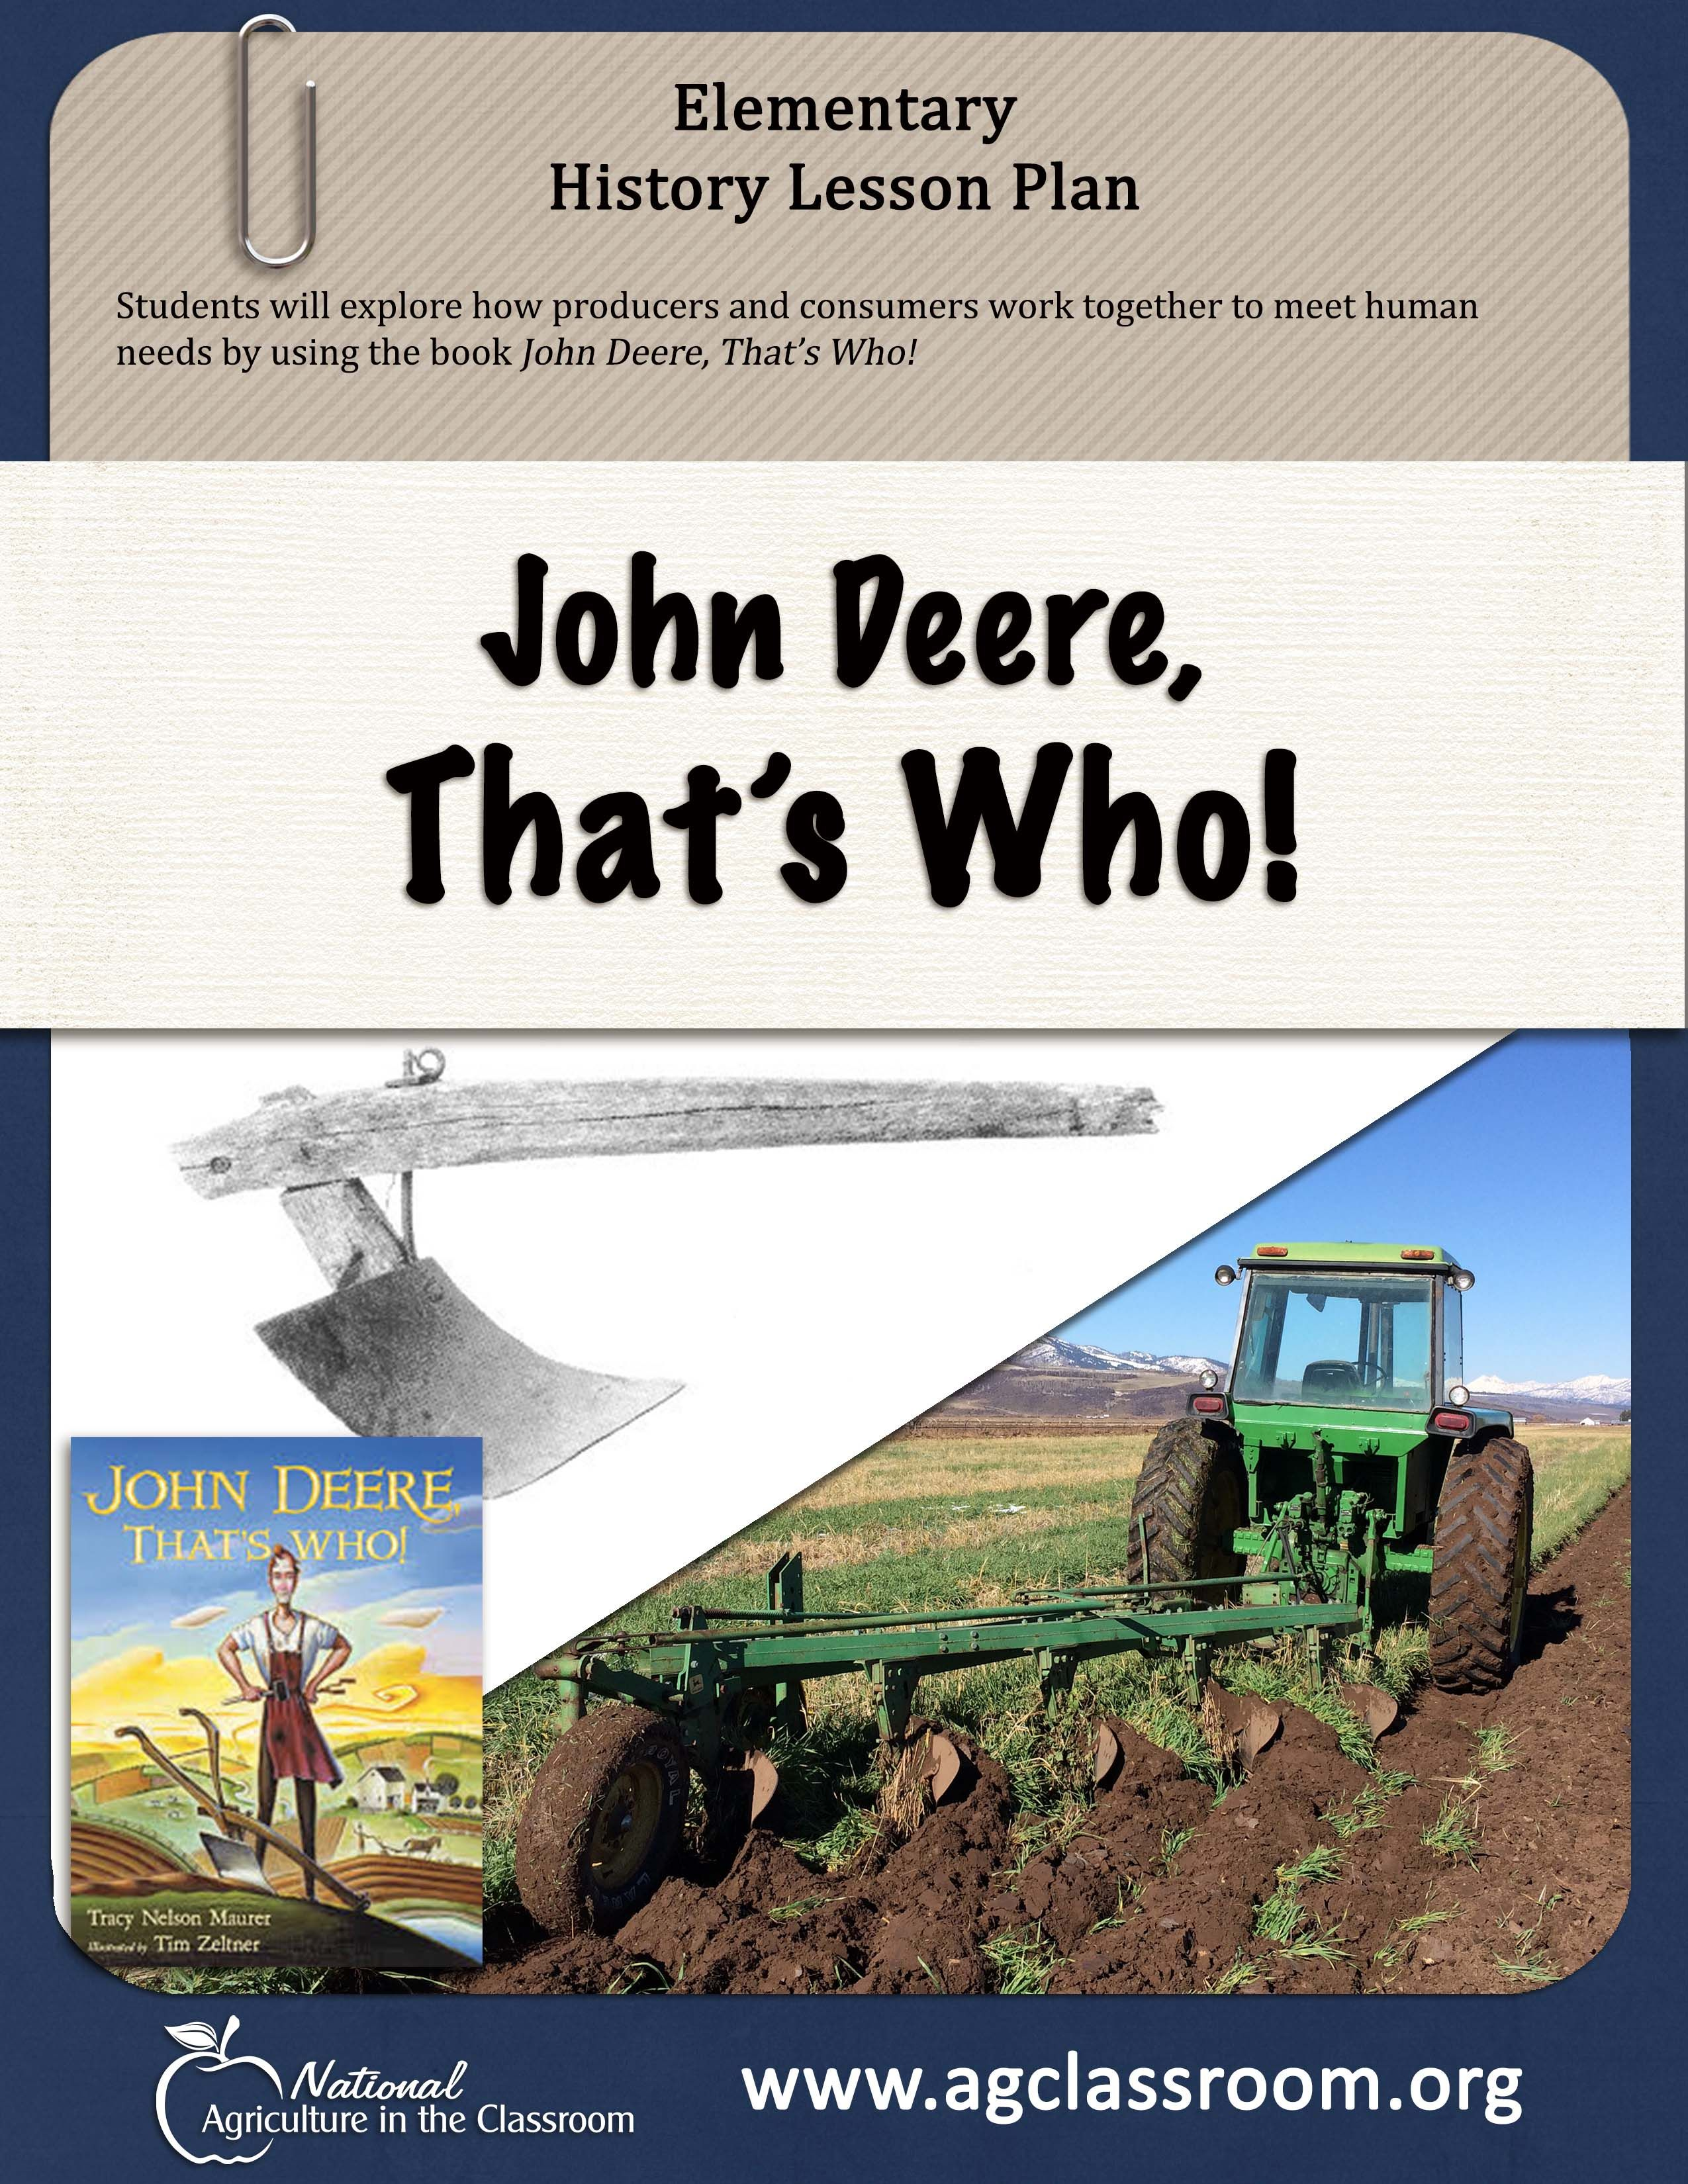 elementary lesson plan teaching about producers and consumers using john deere a blacksmith who invented the the first steel plow as an example  [ 2550 x 3300 Pixel ]